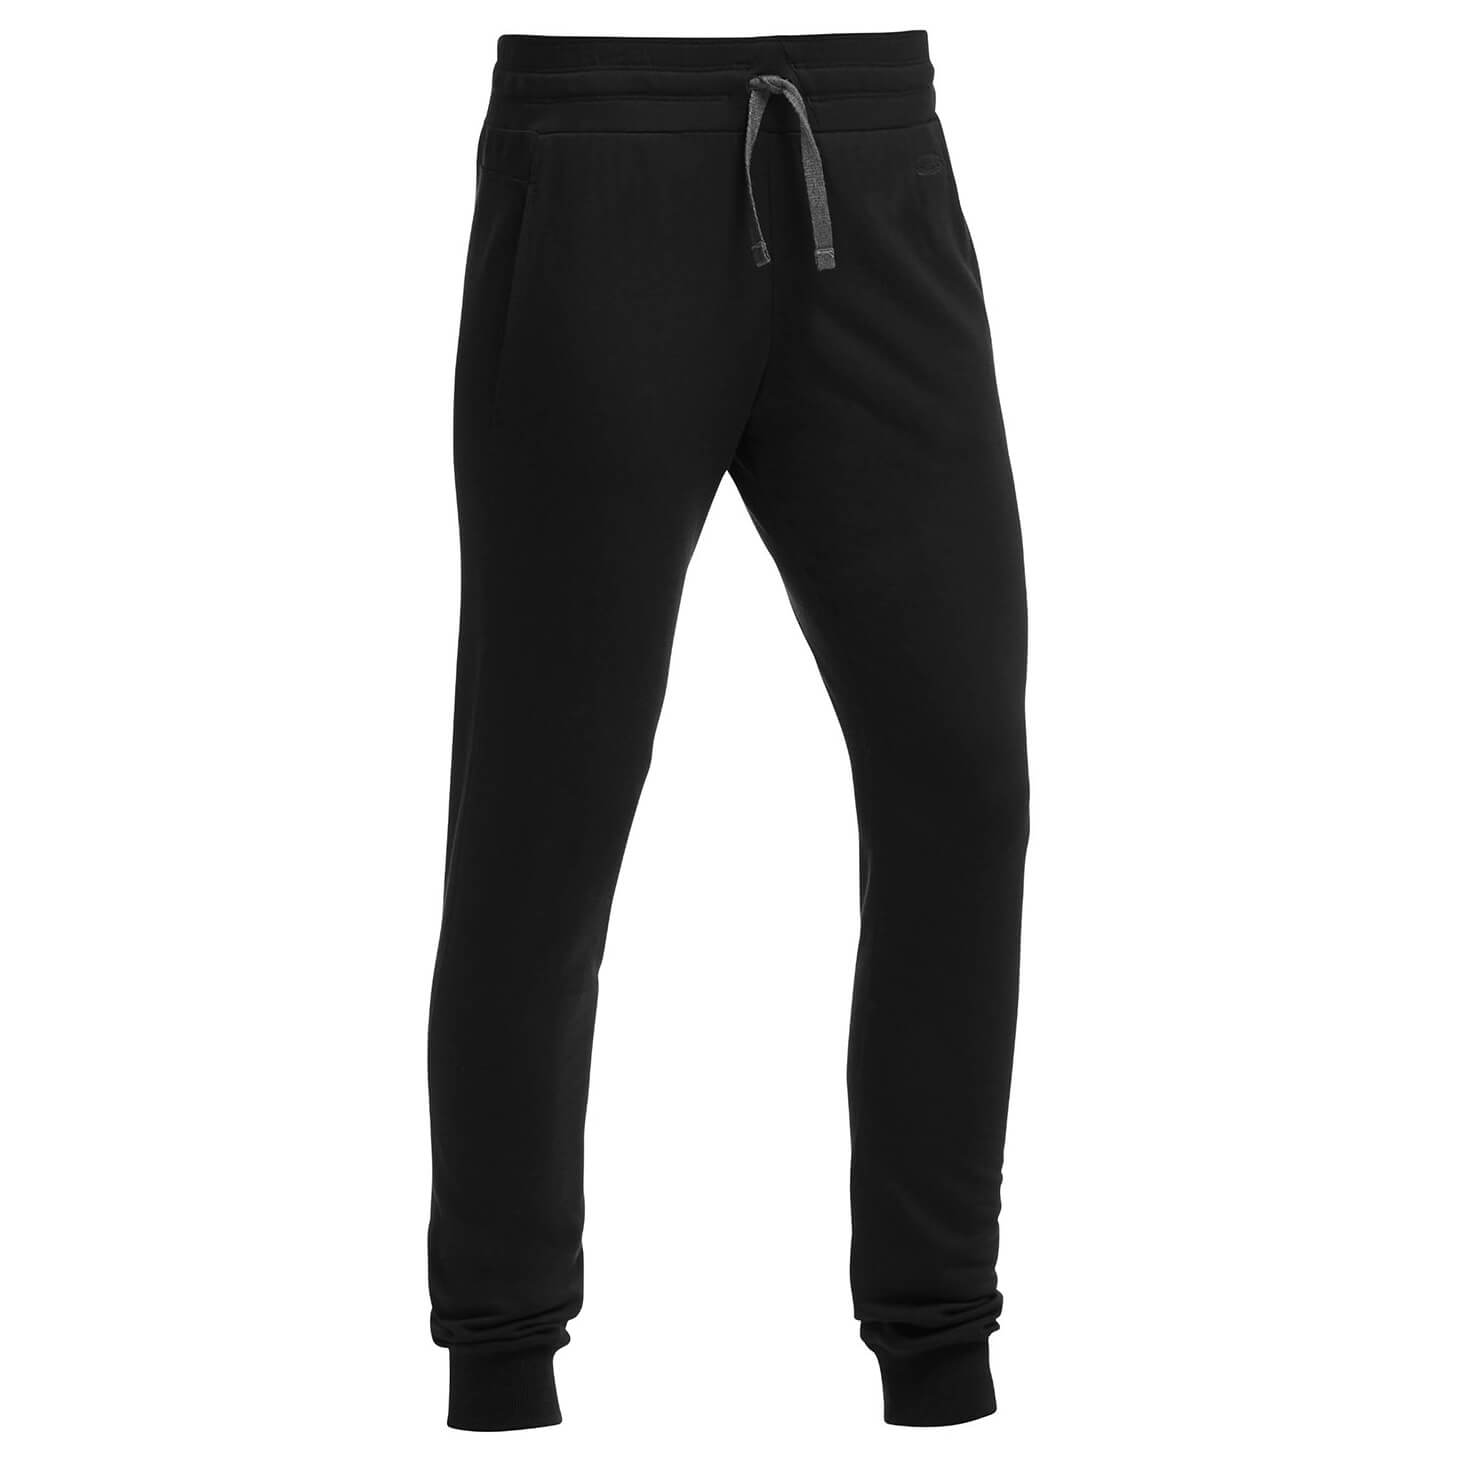 601e08e488 Icebreaker Crush Pants - Tracksuit Trousers Women's | Free UK ...